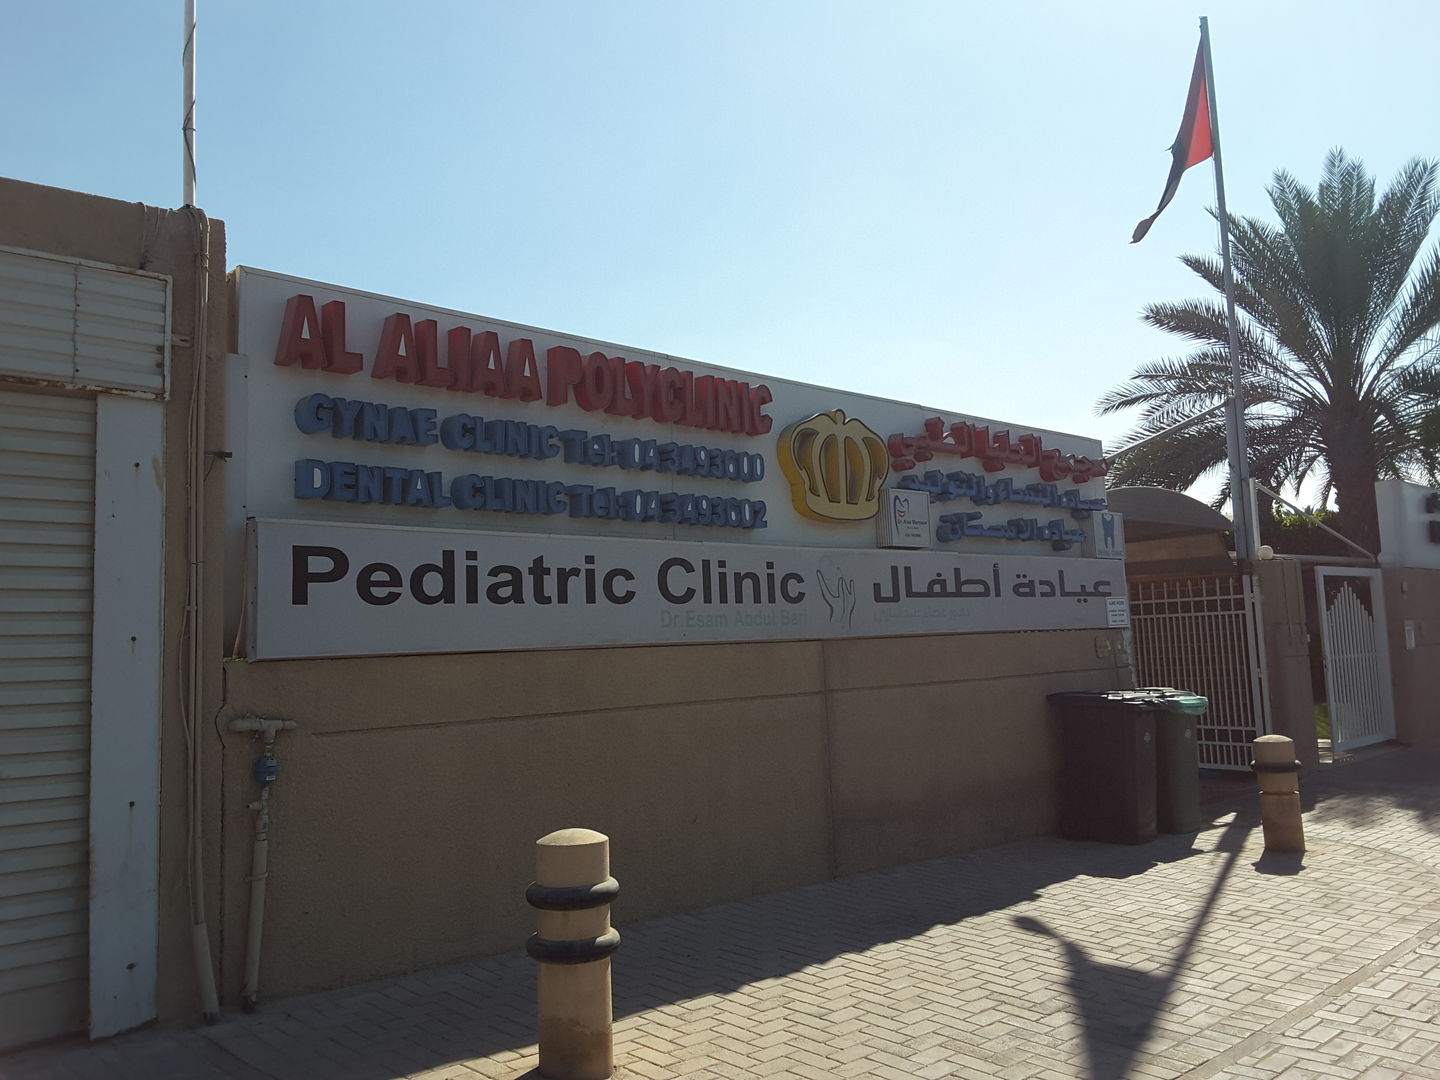 HiDubai-business-al-aliaa-polyclinic-beauty-wellness-health-hospitals-clinics-jumeirah-2-dubai-2